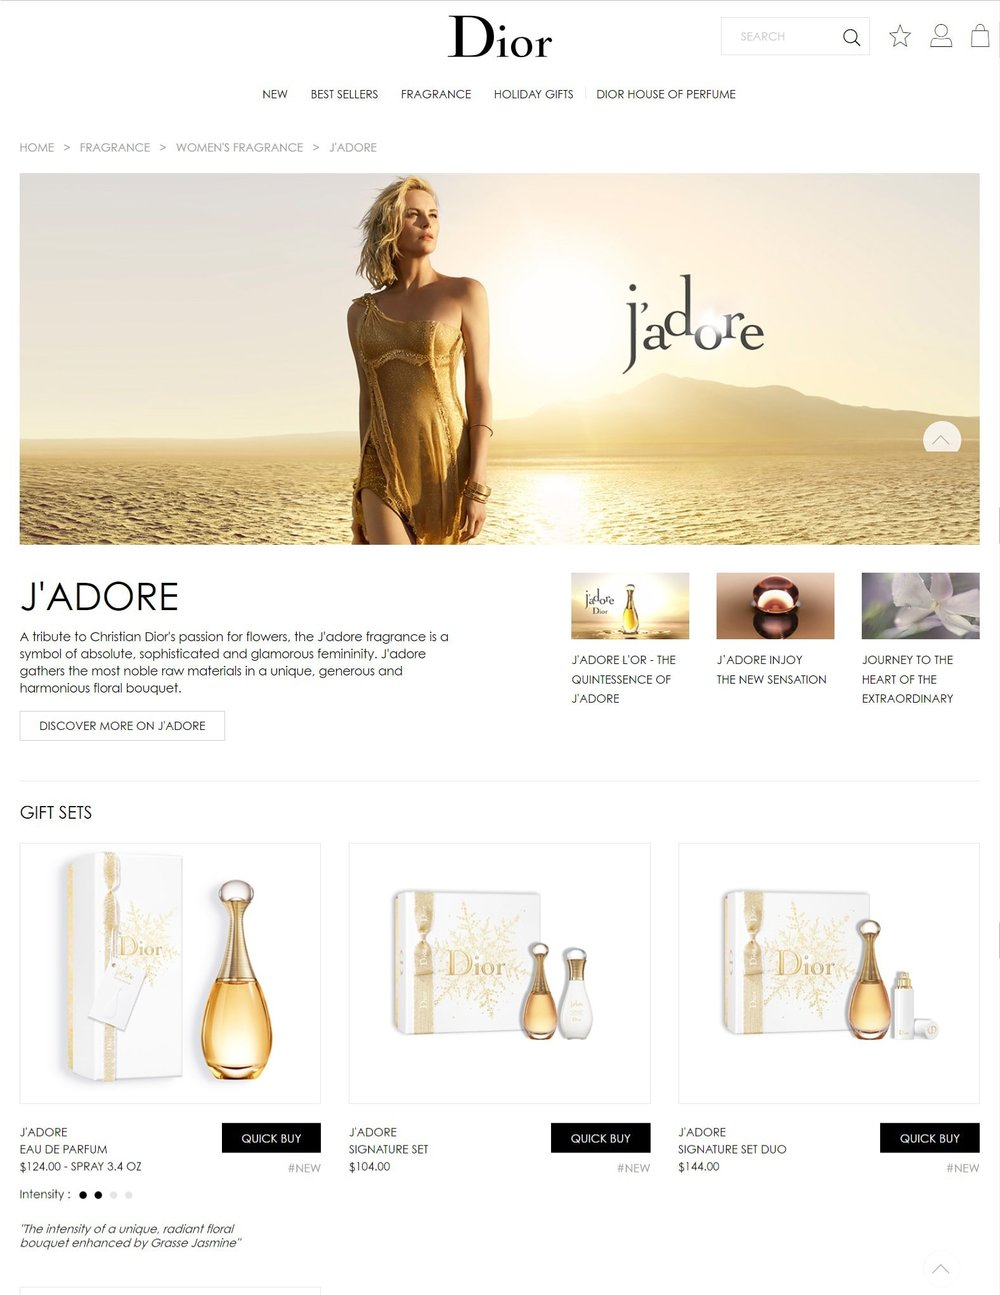 Famous brand Landing Page design. Source: Dior